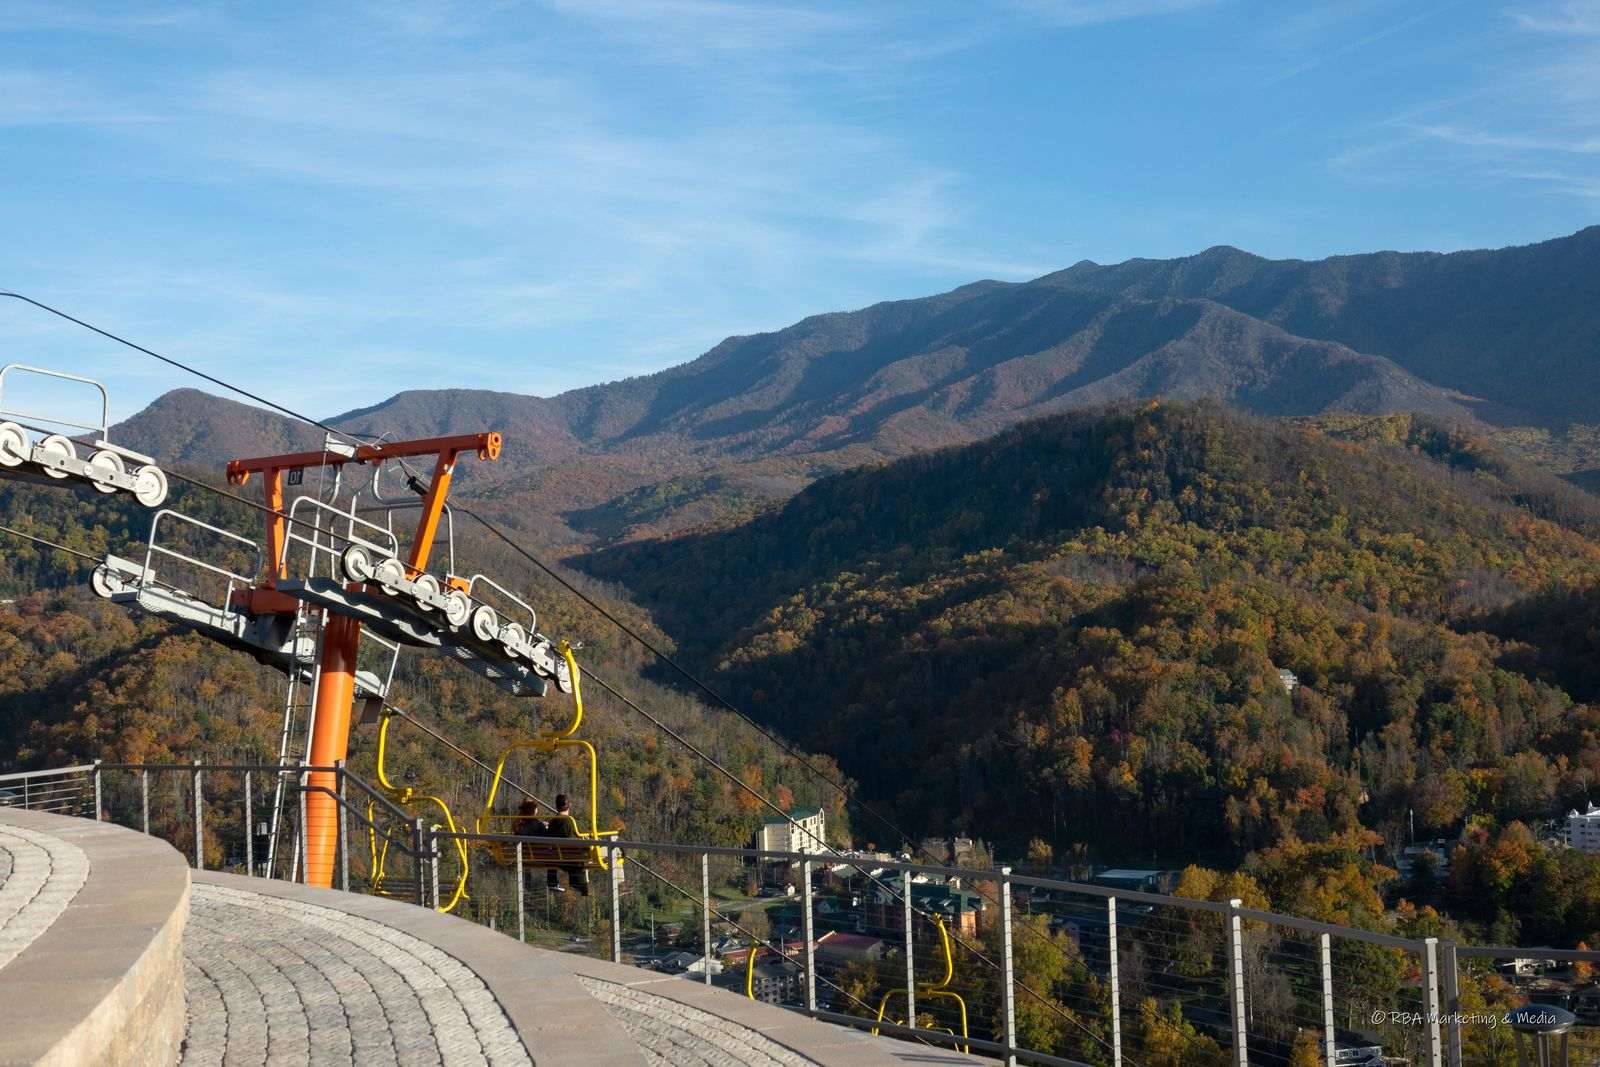 The SkyBridge is set to open in Gatlinburg, Tennessee. It's the longest pedestrian suspension bridge in North America. (SkyBridge)